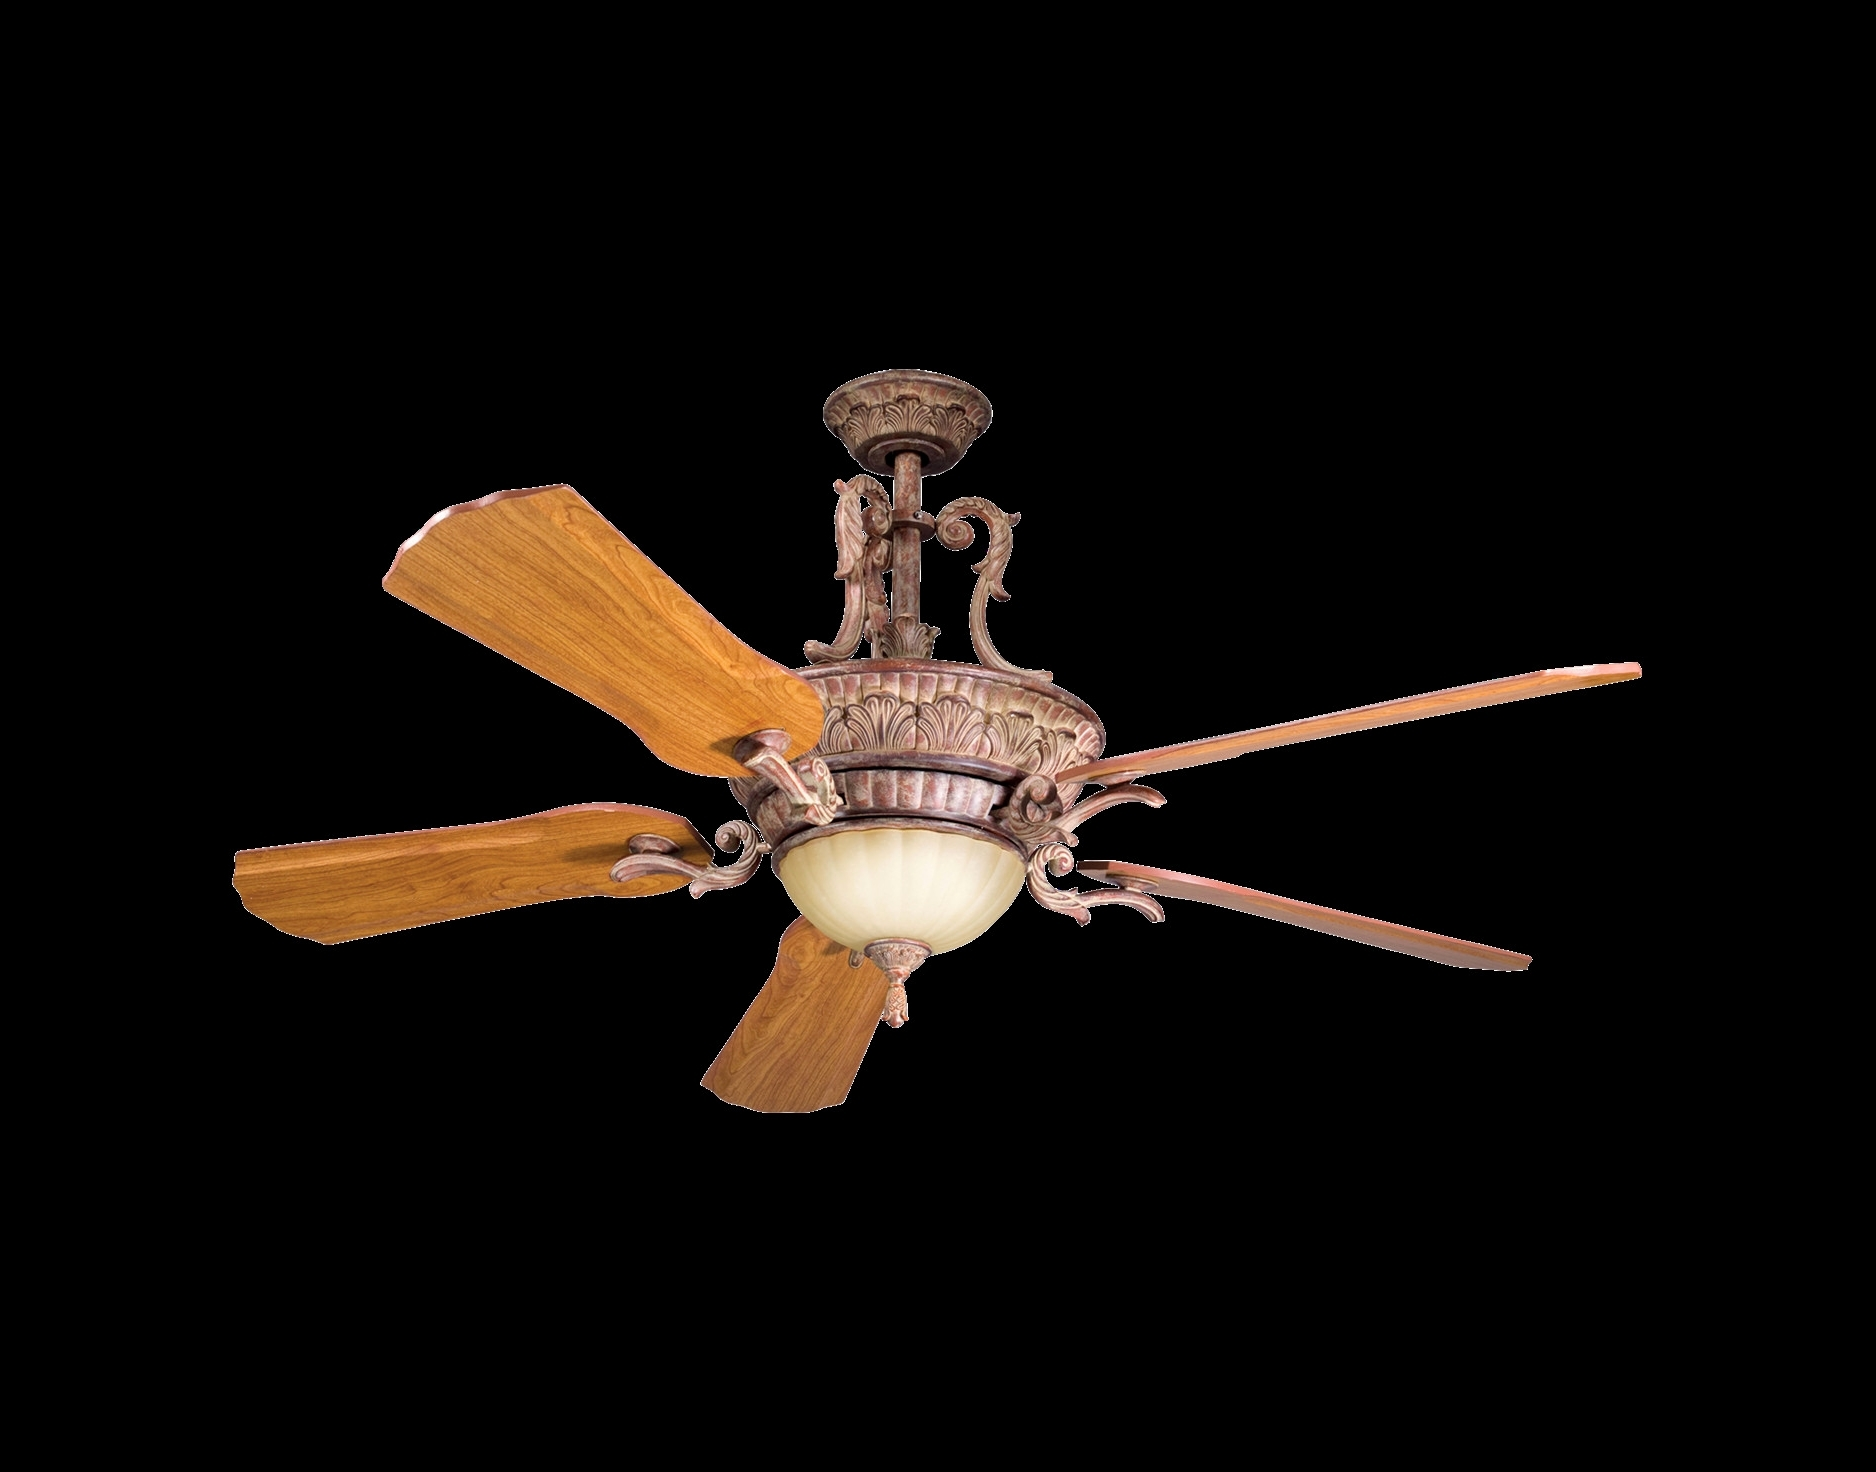 Fashionable Windmill Ceiling Fan With Light Luxury Victorian Ceiling Fans Luxury For Outdoor Windmill Ceiling Fans With Light (View 20 of 20)